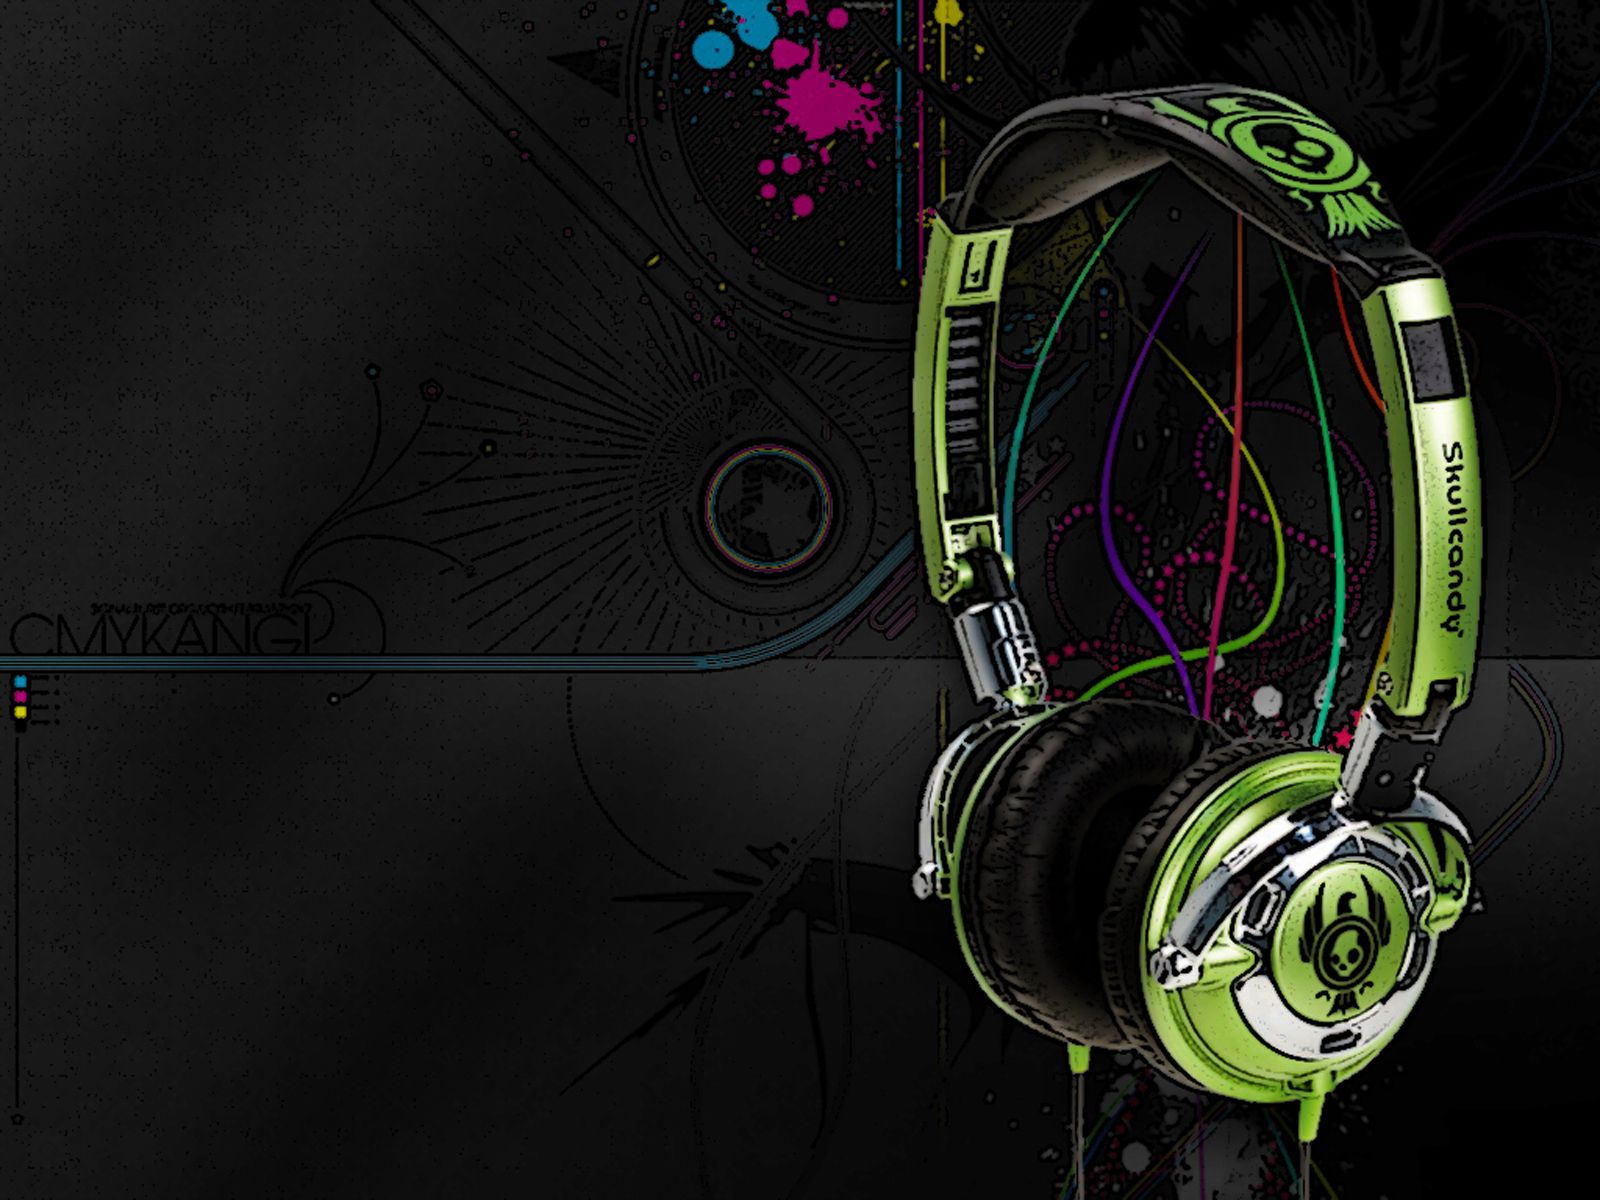 Headphones Wallpaper Music Headphones Music Wallpaper Headphones